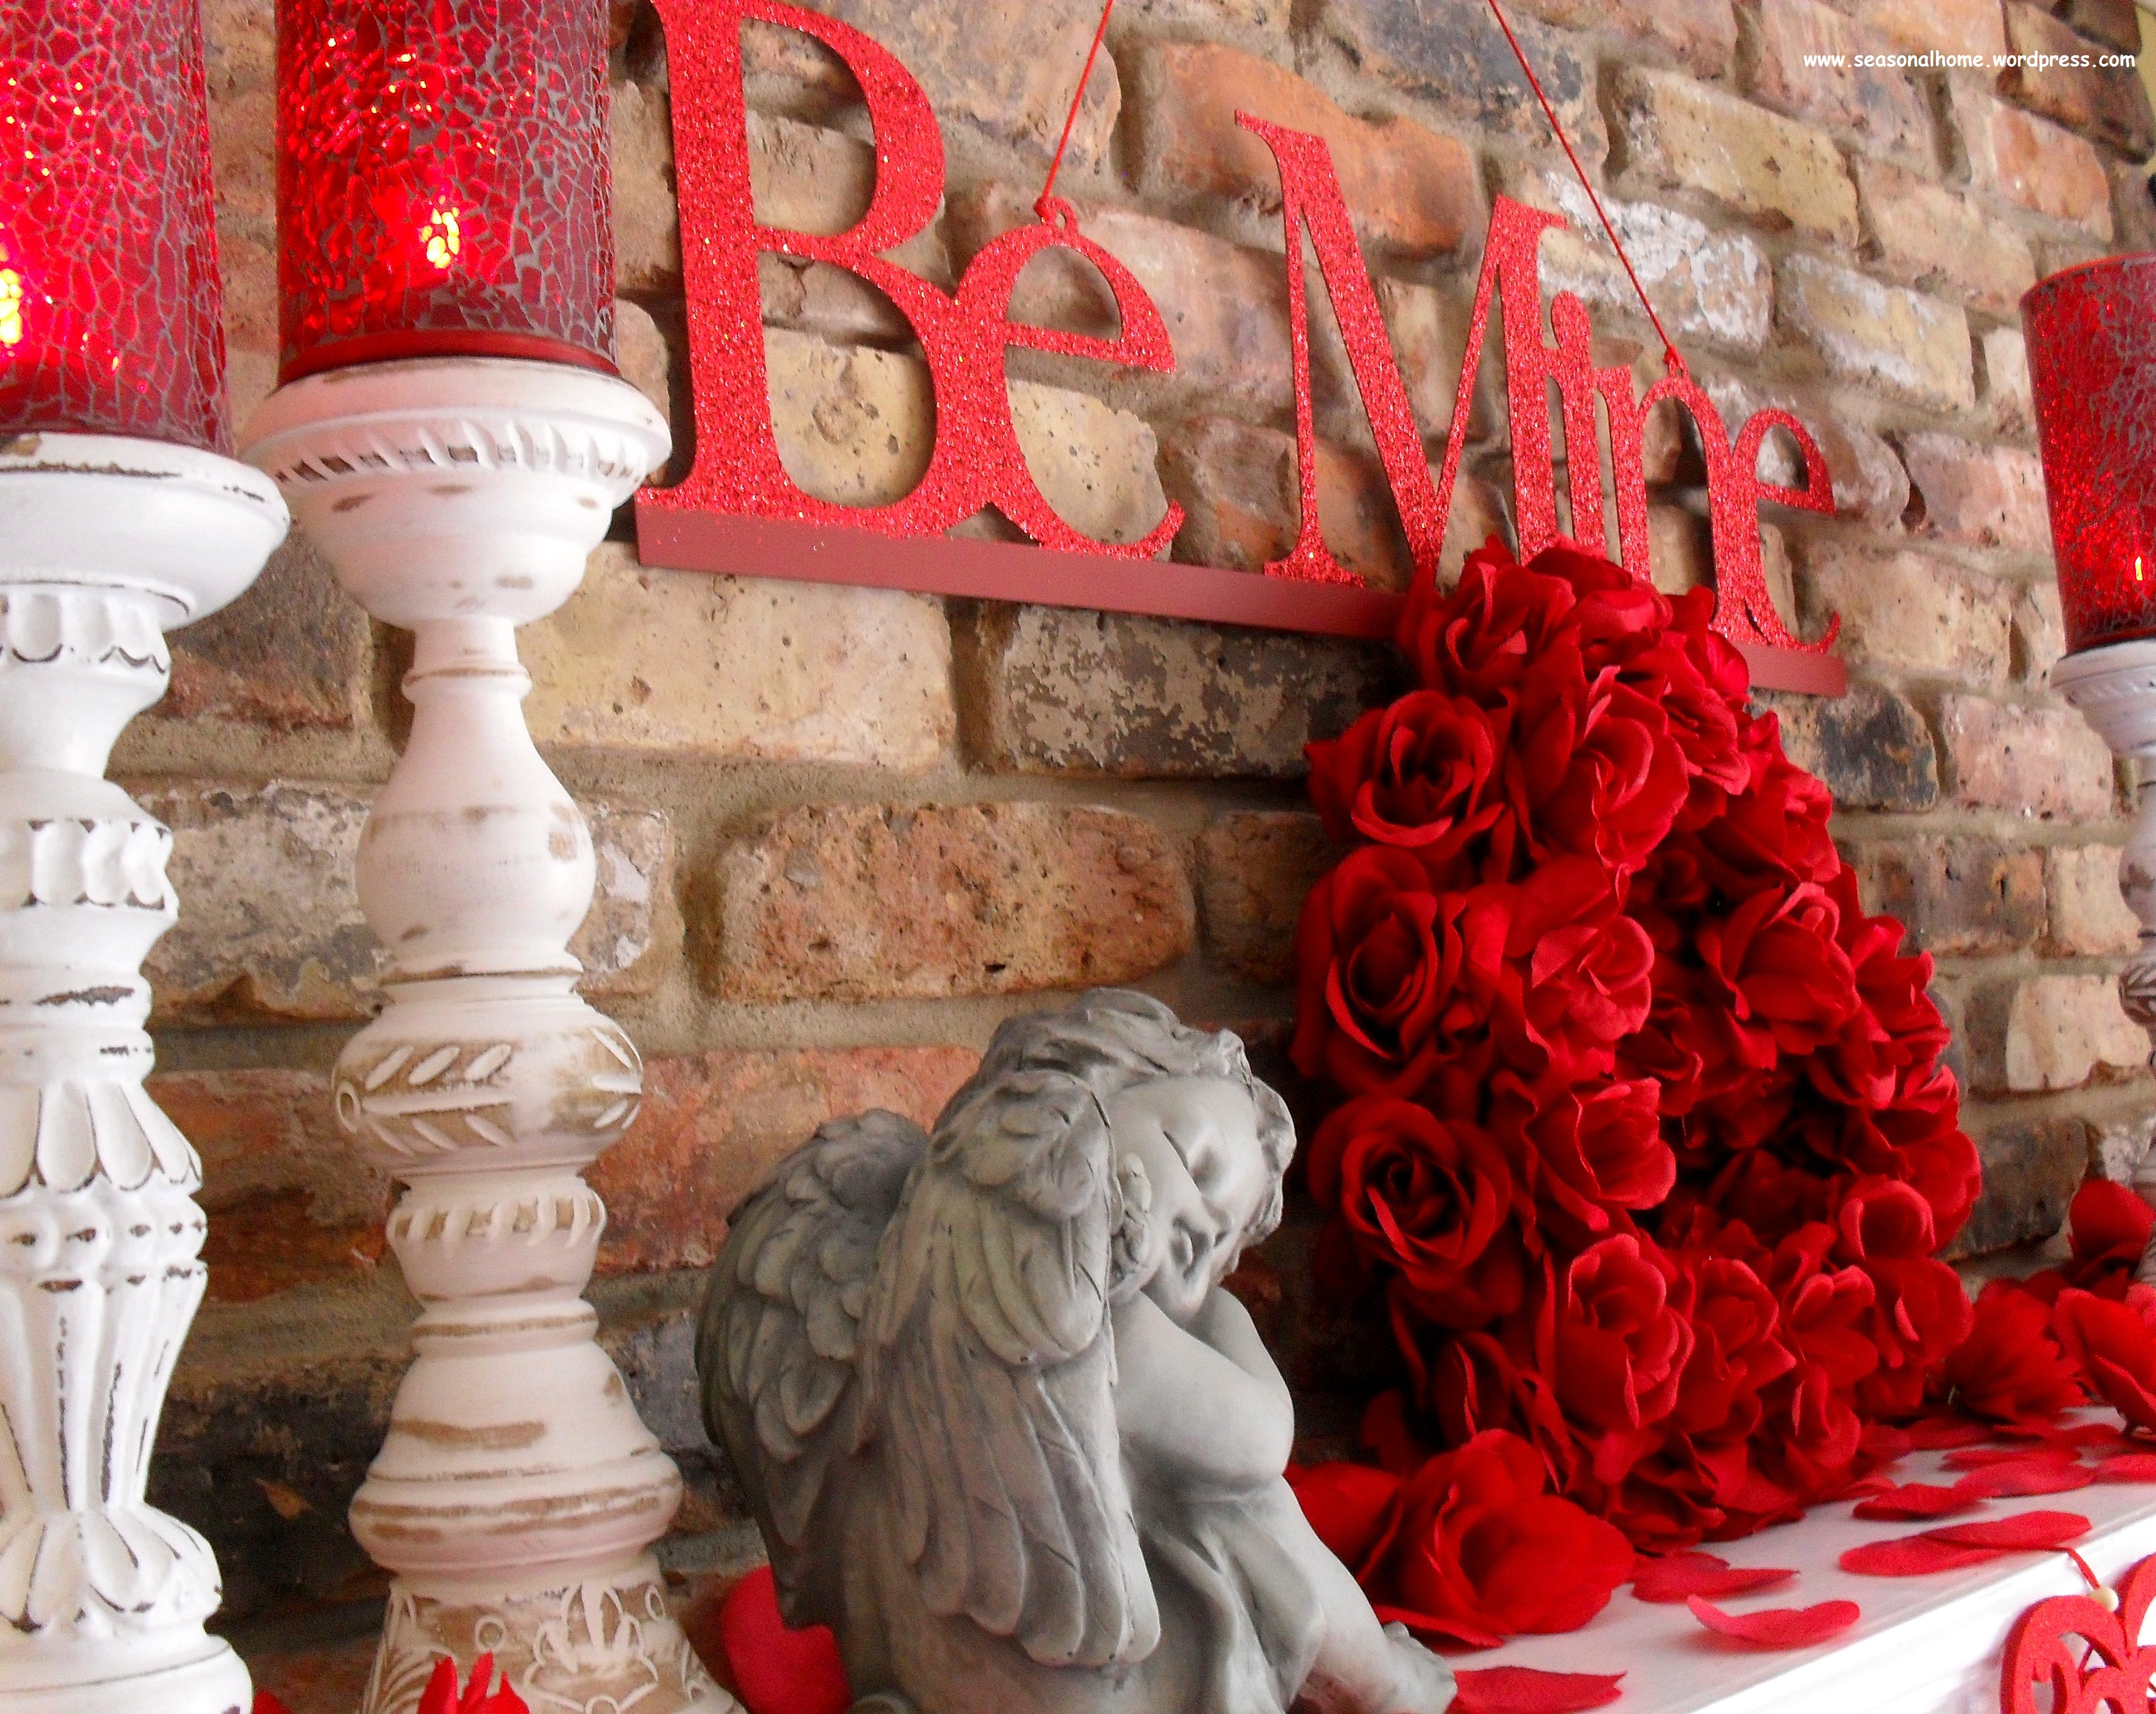 Inexpensive Decorations For St. Valentine's Day « The